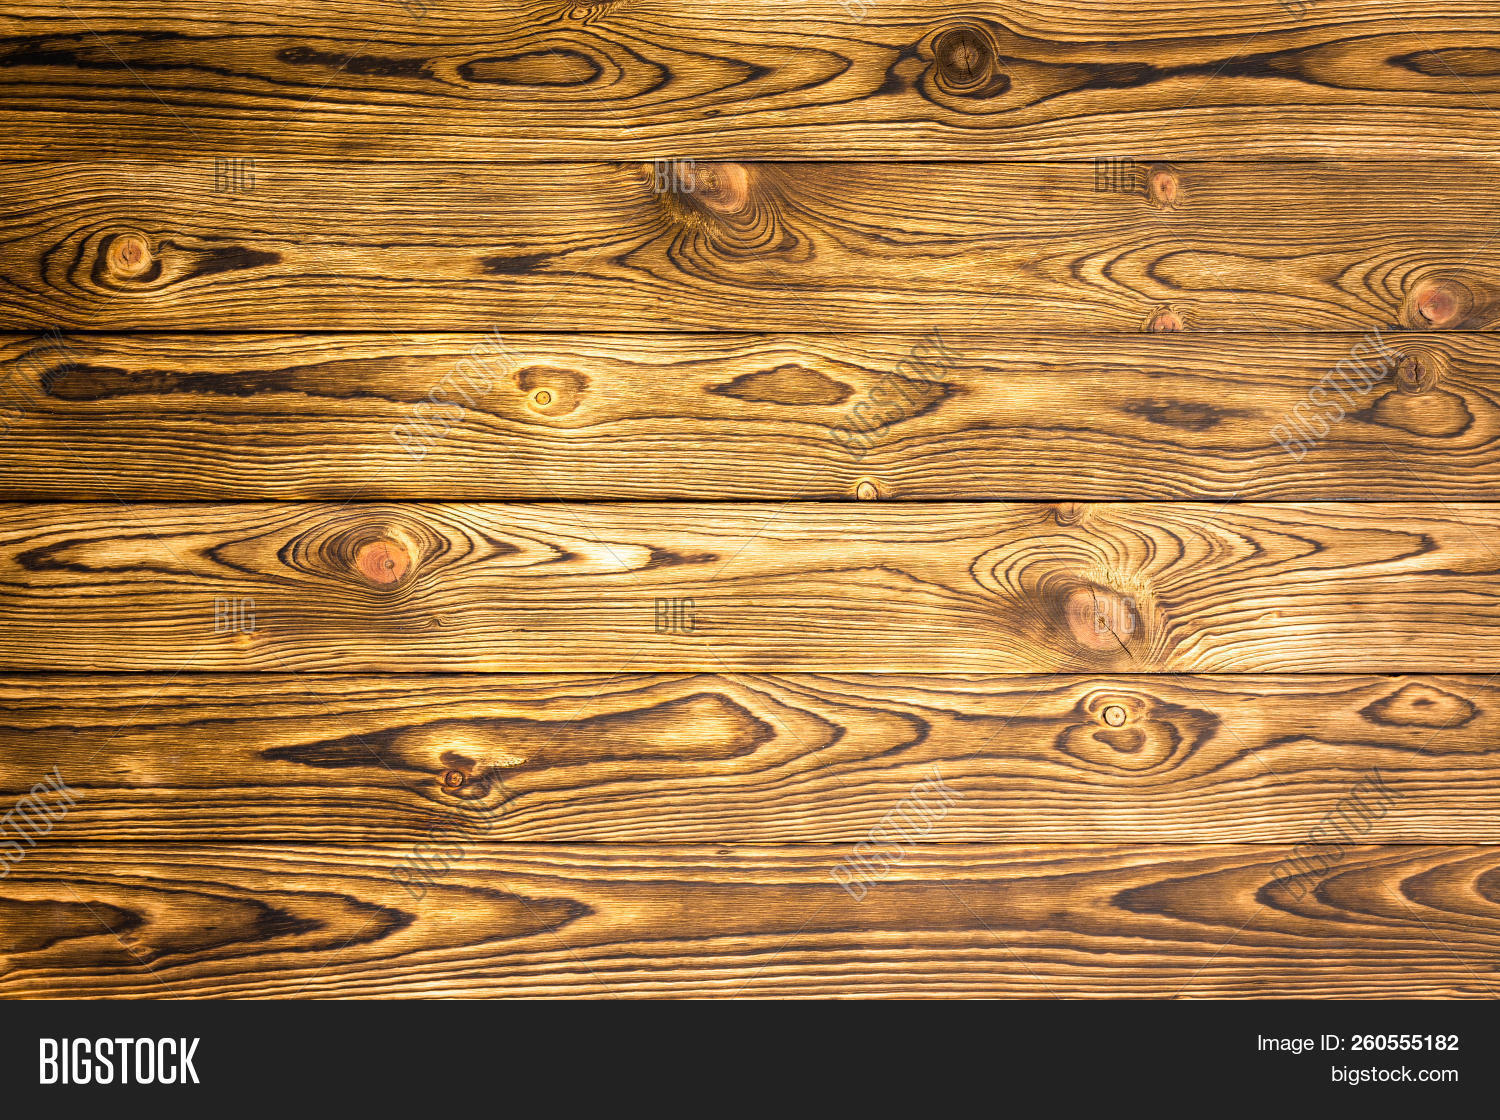 Rustic Wood Background Image Photo Free Trial Bigstock Rustic wood planks vintage background vector. rustic wood background image photo